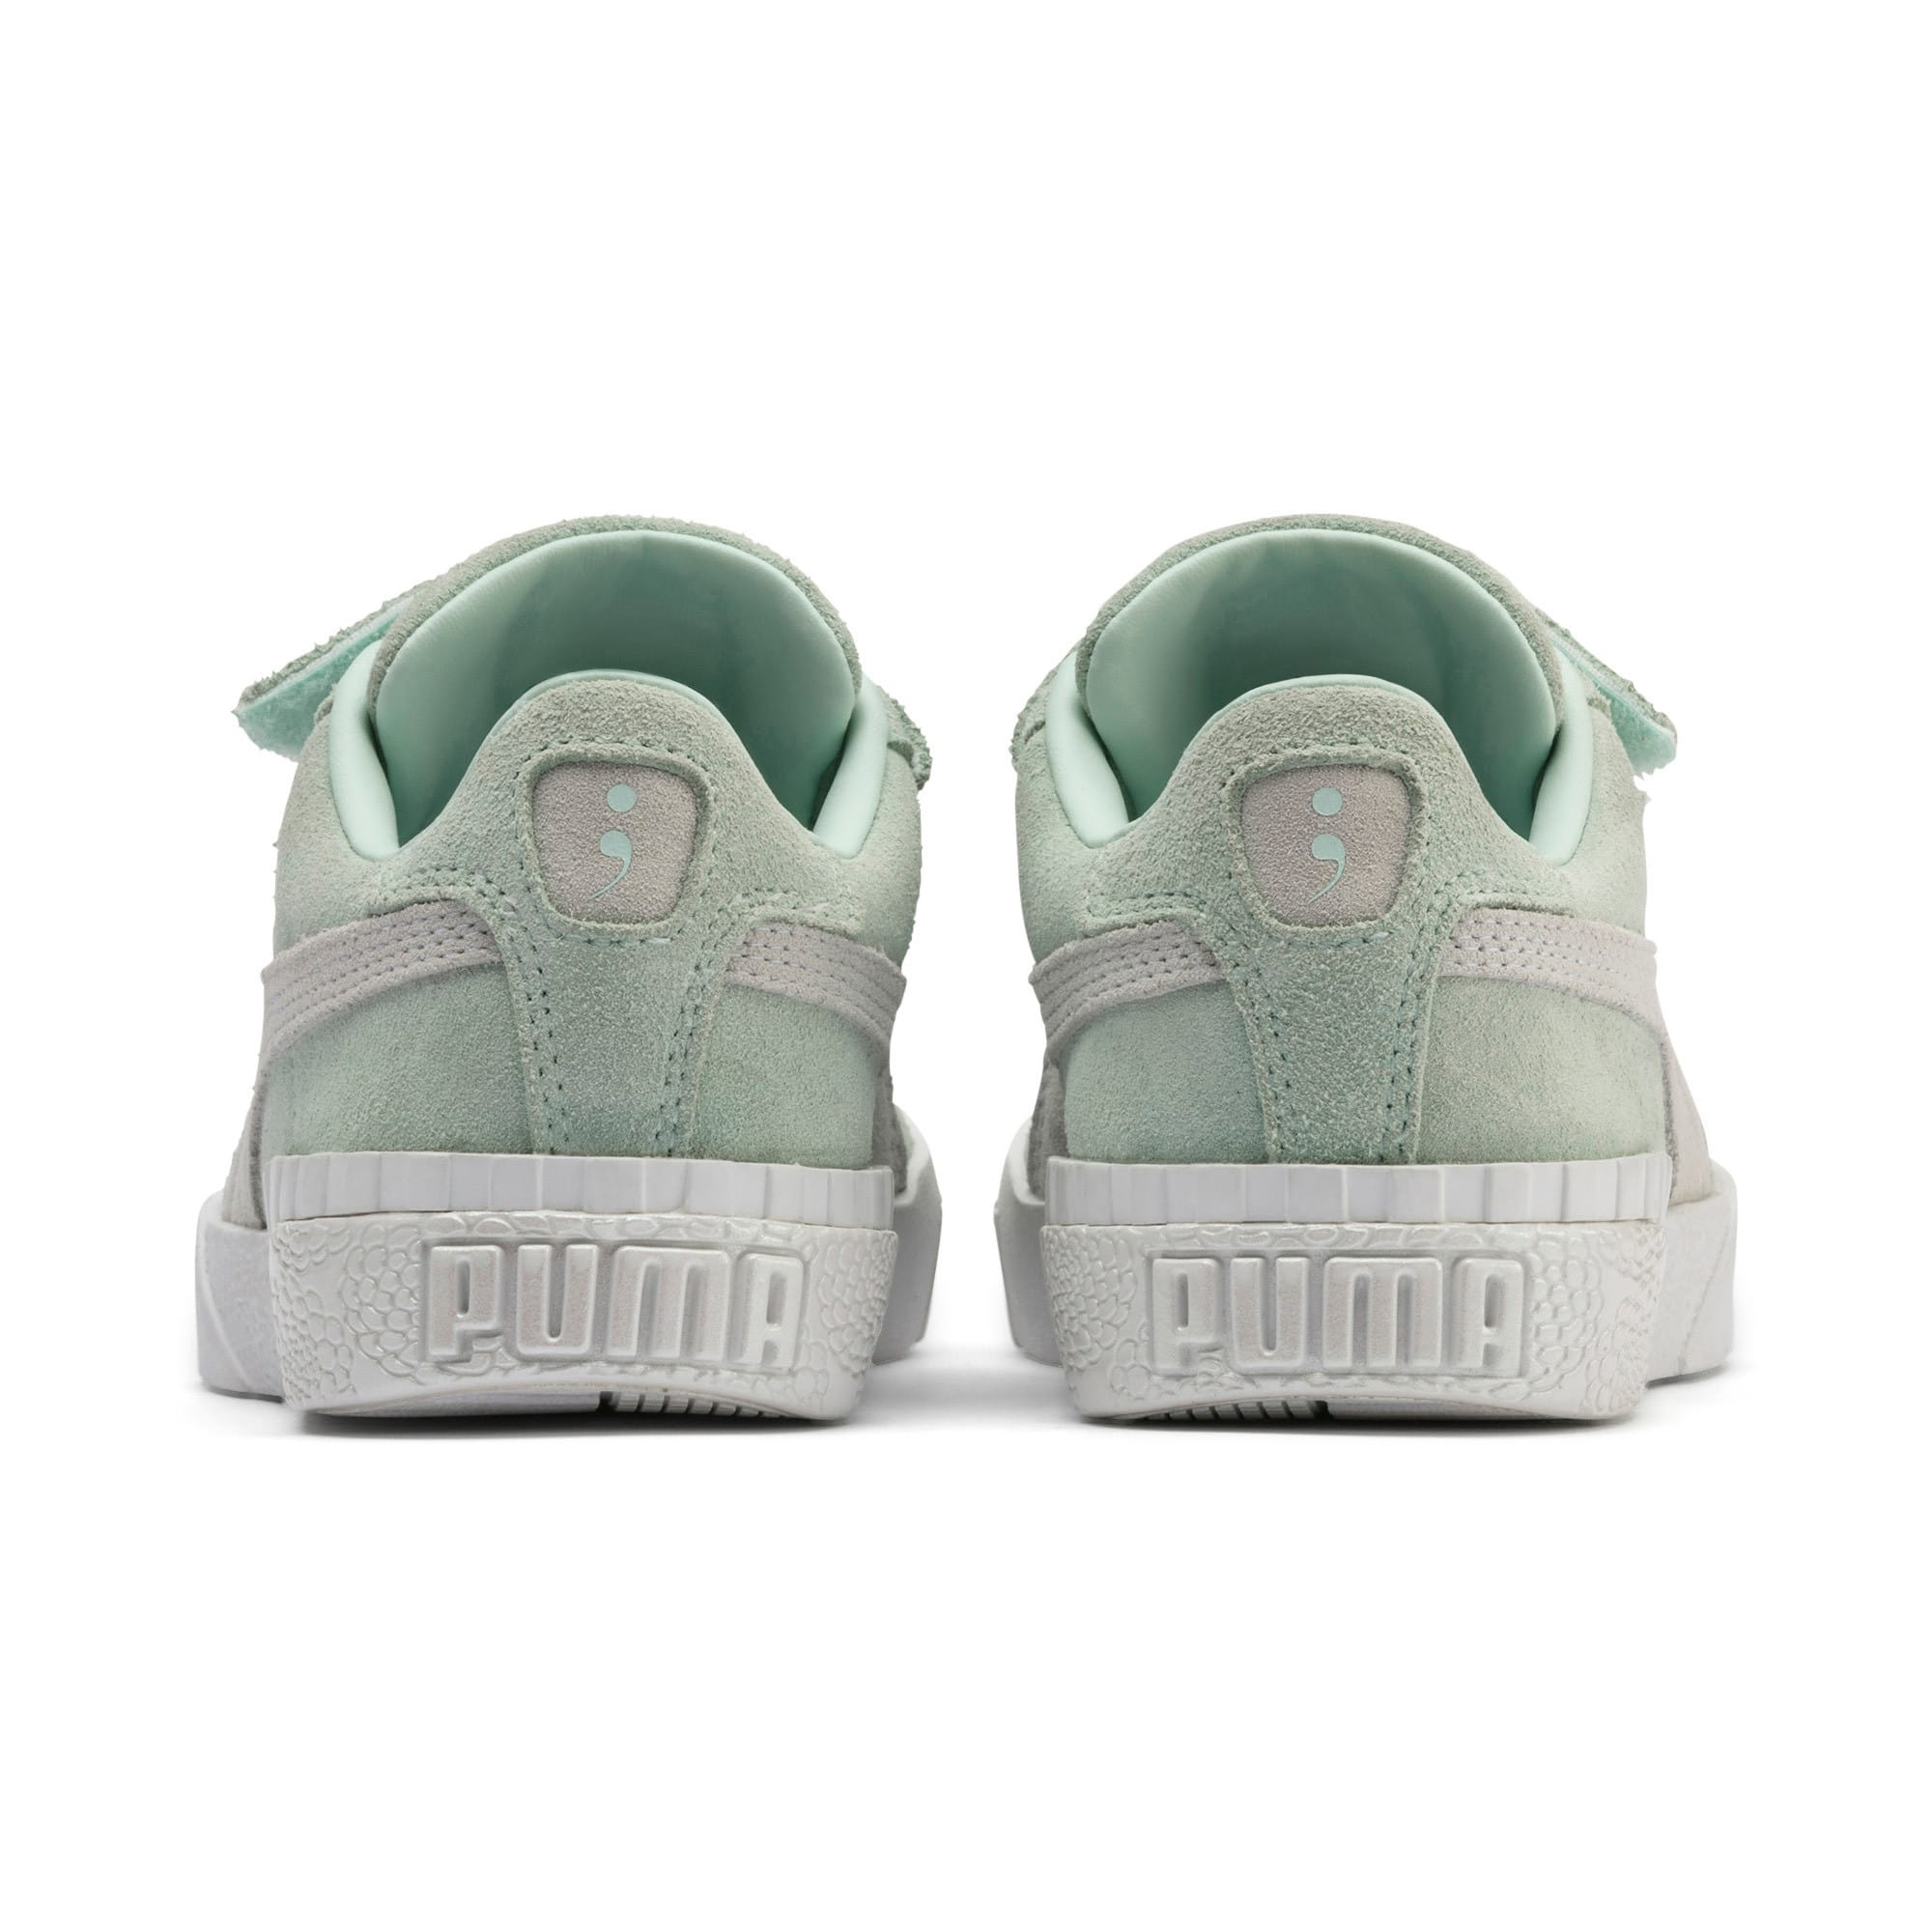 Thumbnail 3 of PUMA x Selena Gomez Kids' Cali Patent Trainers, Fair Aqua-Puma White, medium